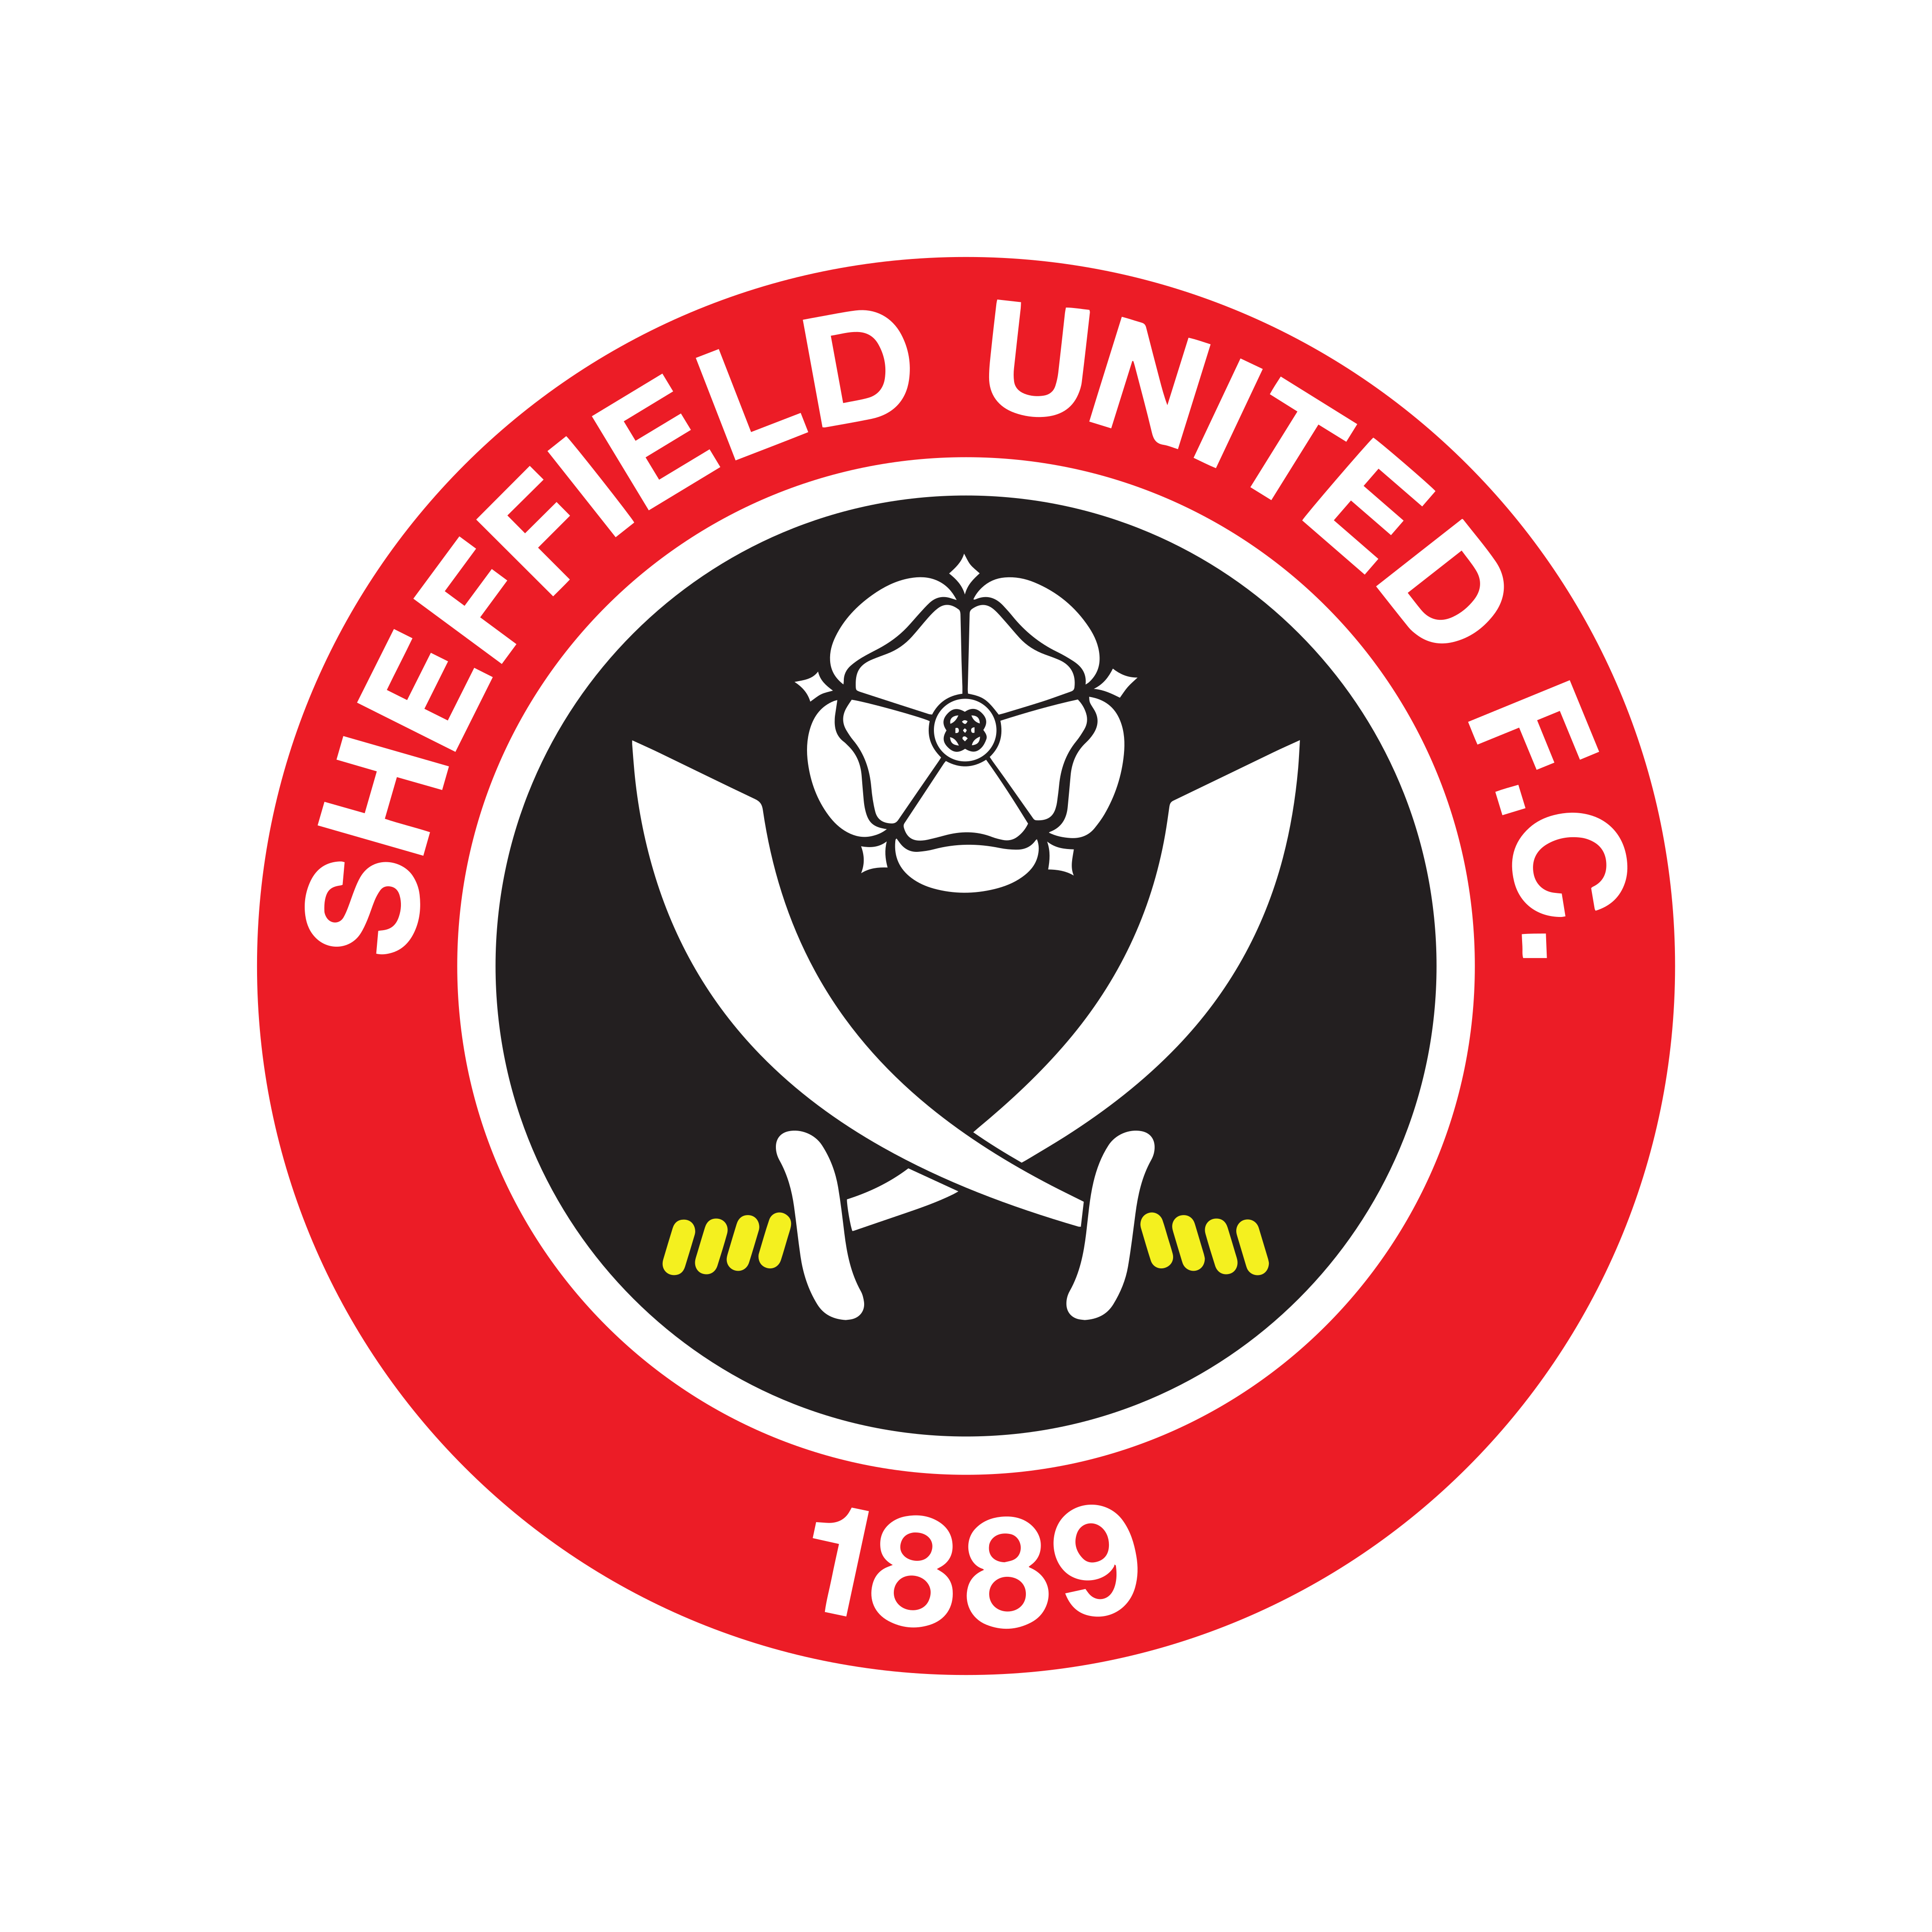 sheffield united logo 0 - Sheffield United FC Logo